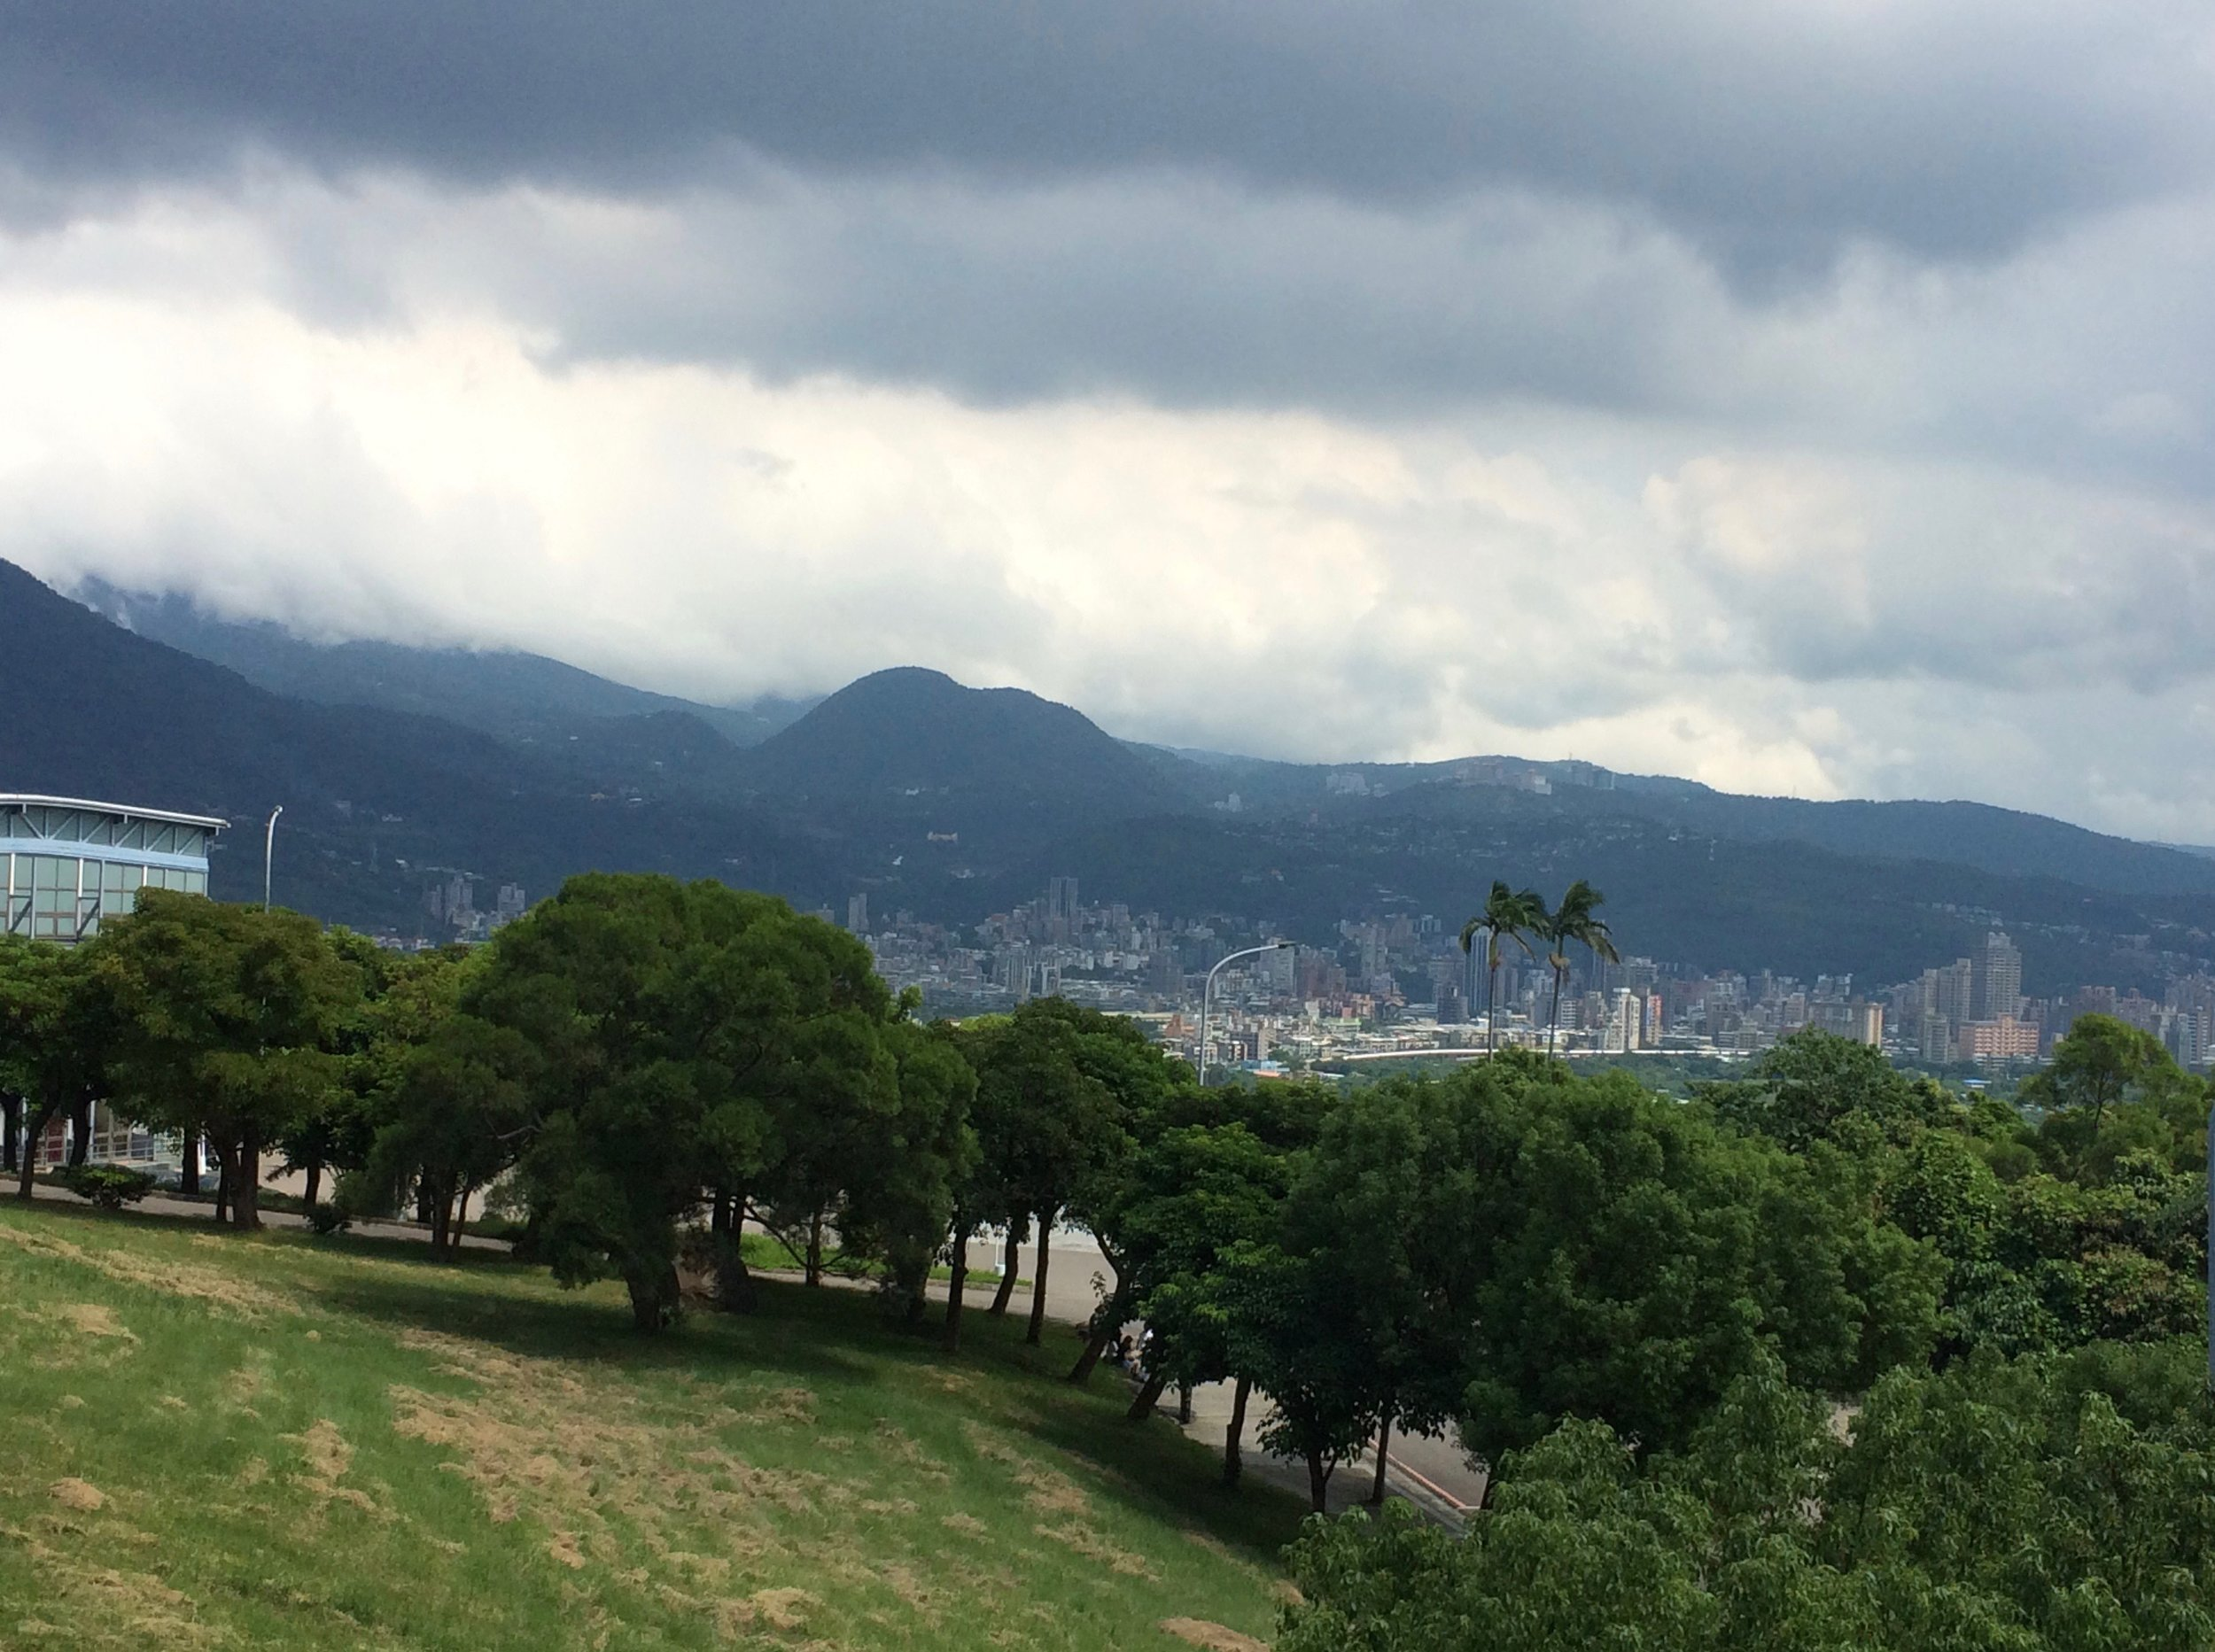 Looking out from the Guest House toward misty mountains and parts of extended New Taipei City